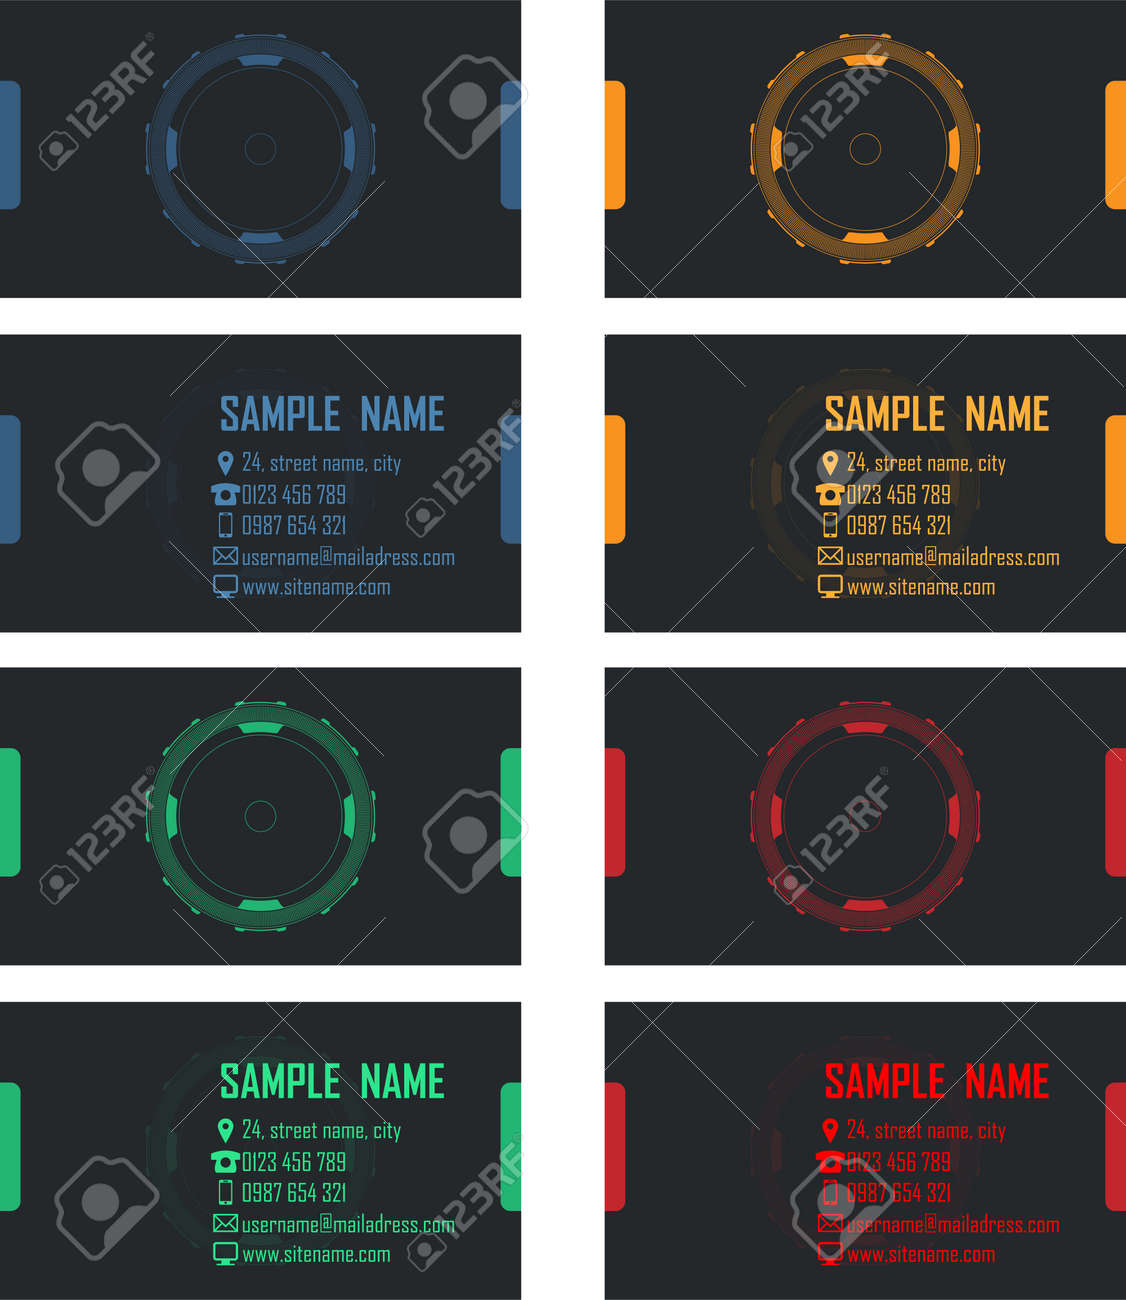 Business Cards Vector Pack With Sci-fi Target Design Royalty Free ...